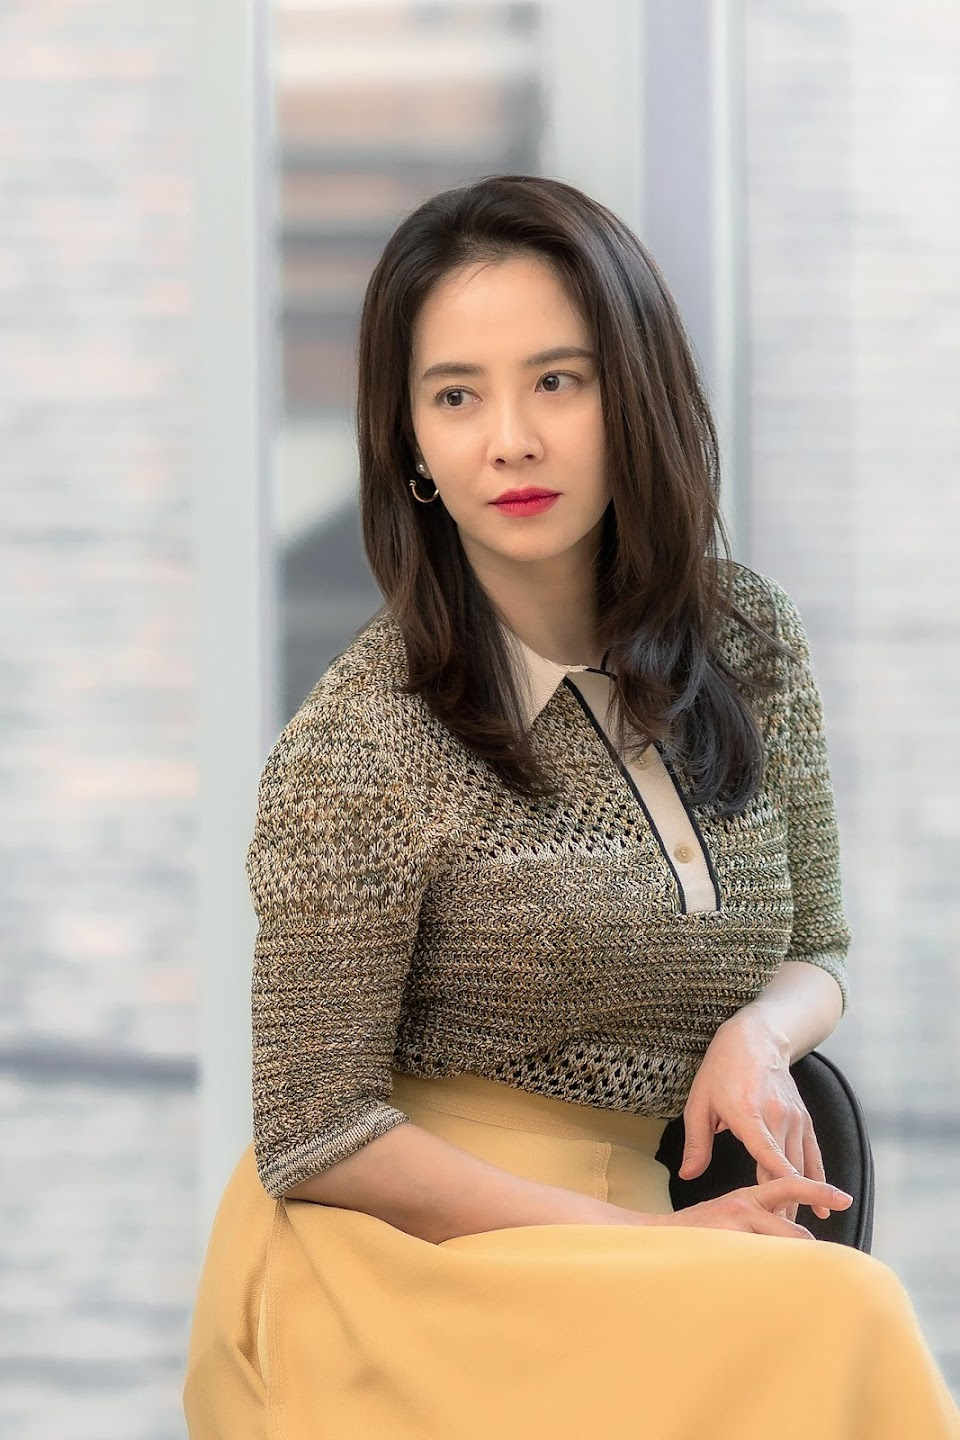 song ji hyo movie weight loss 3